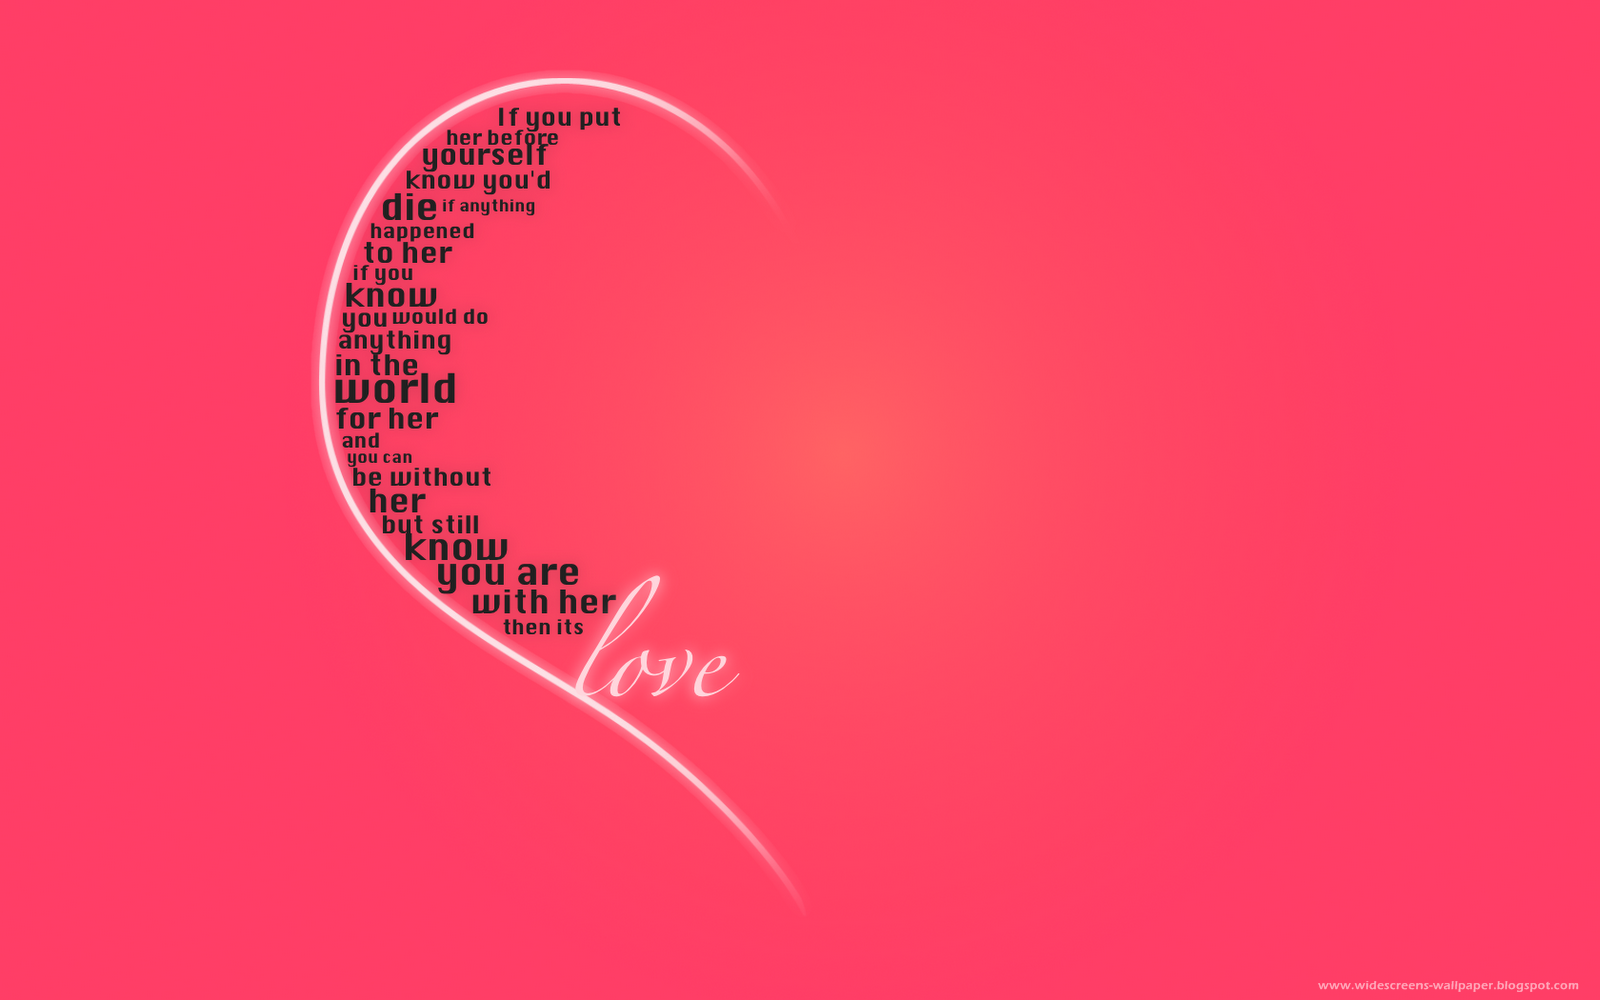 True Love Wallpaper Images : Wallpaper collection For Your computer and Mobile Phones: New Romantic Love Words And Quotations ...